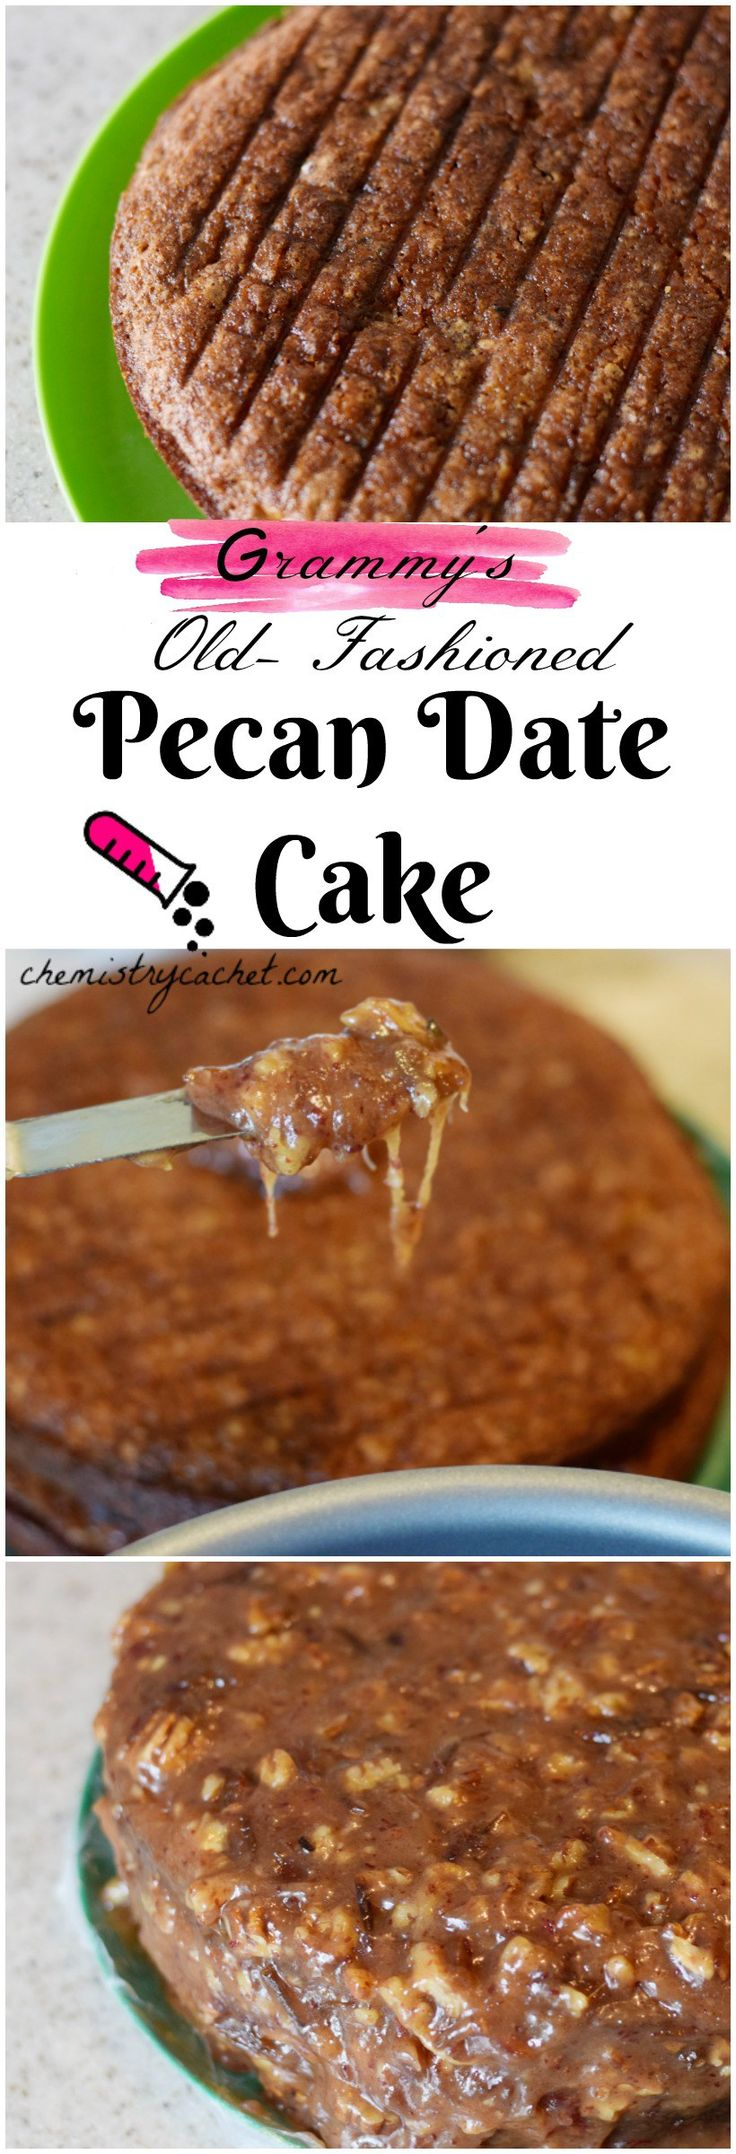 Grammy's old-fashioned pecan date cake. A beautiful, special vintage cake recipe perfect for any occassion! Pecan date cake recipe on chemistrycachet.com